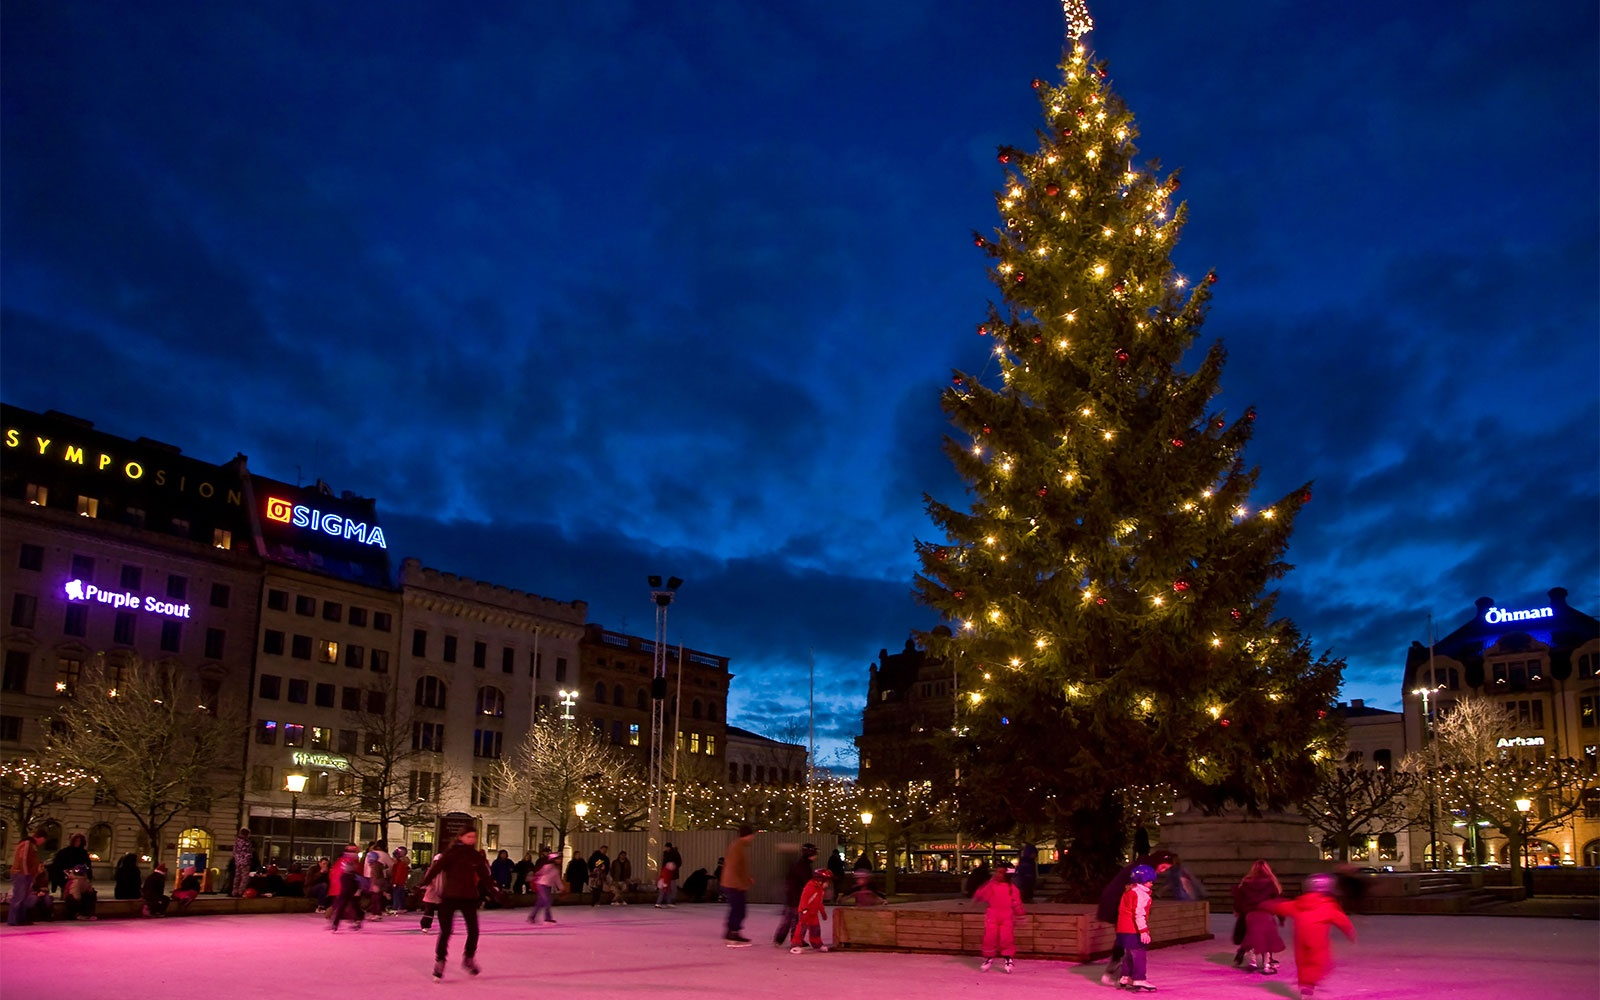 christmas vacation ideas malm sweden - Best Christmas Vacation